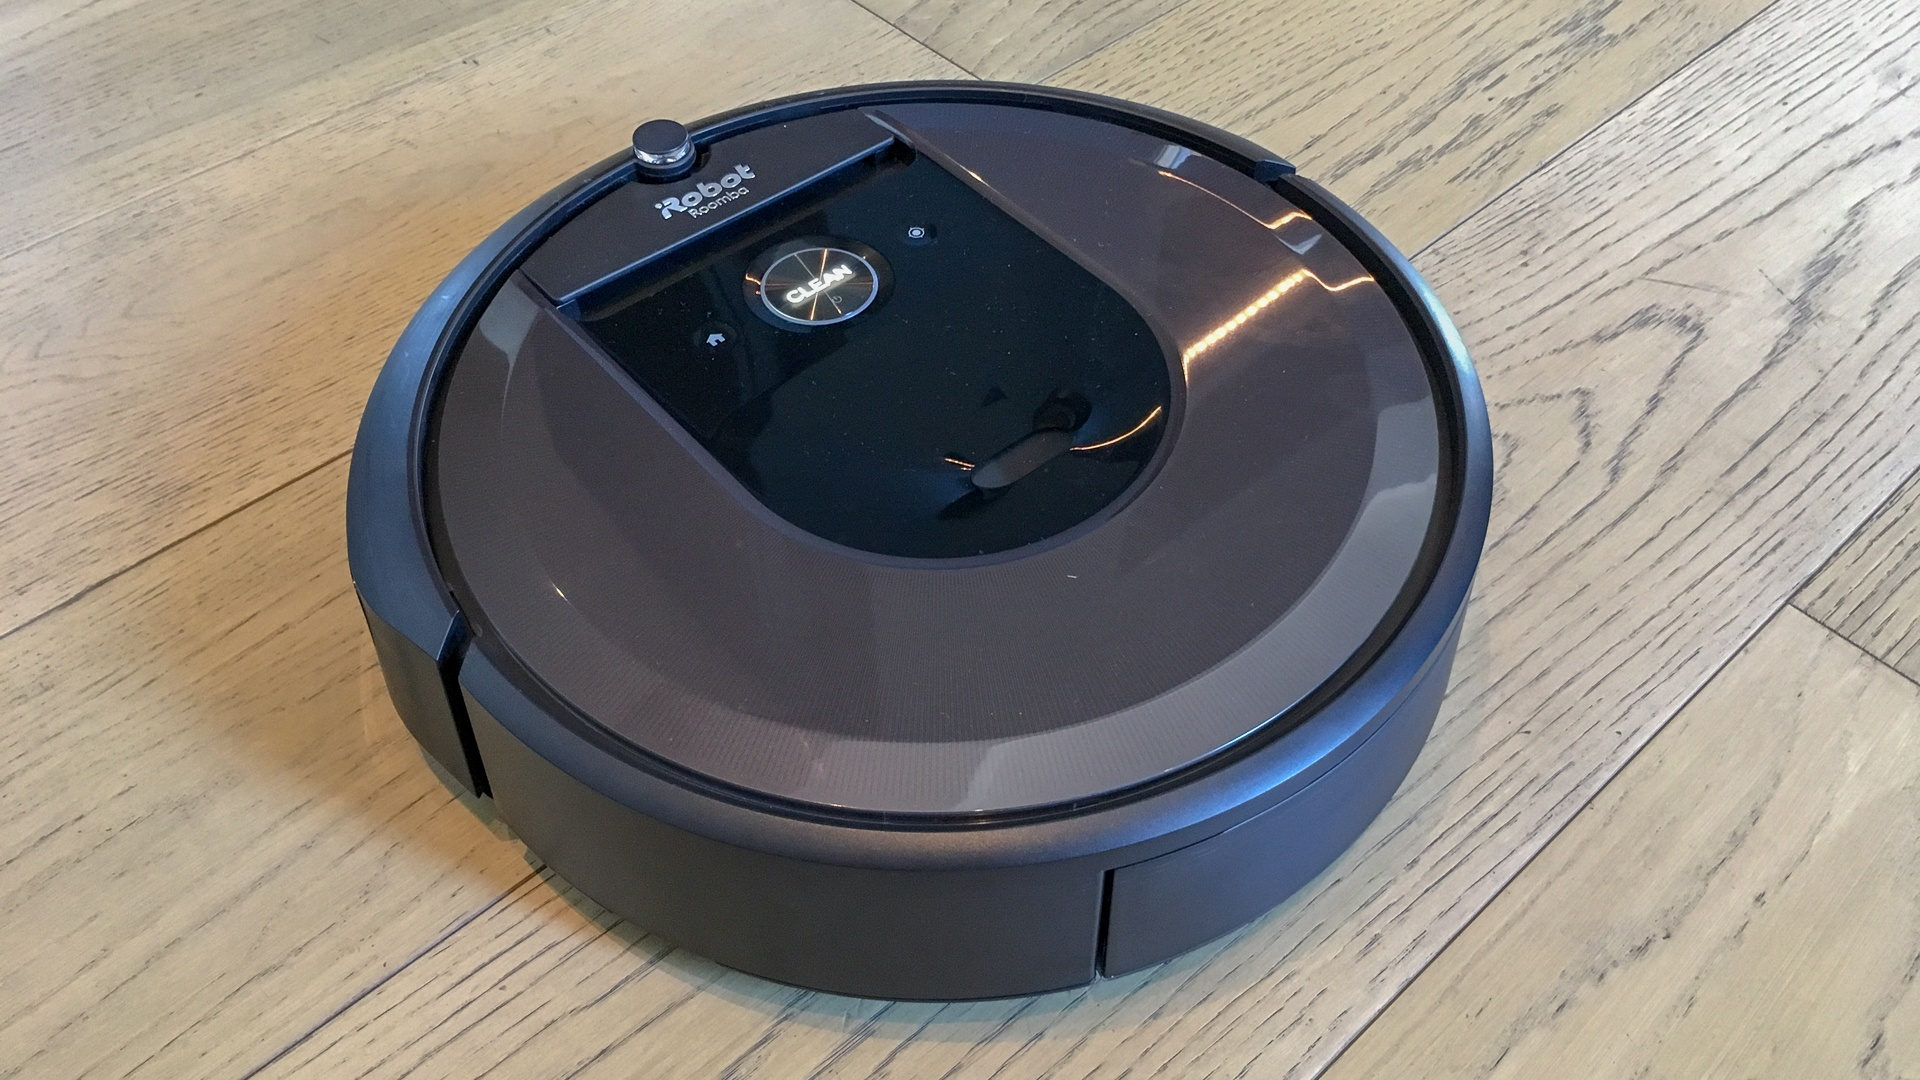 iRobot's new Roomba